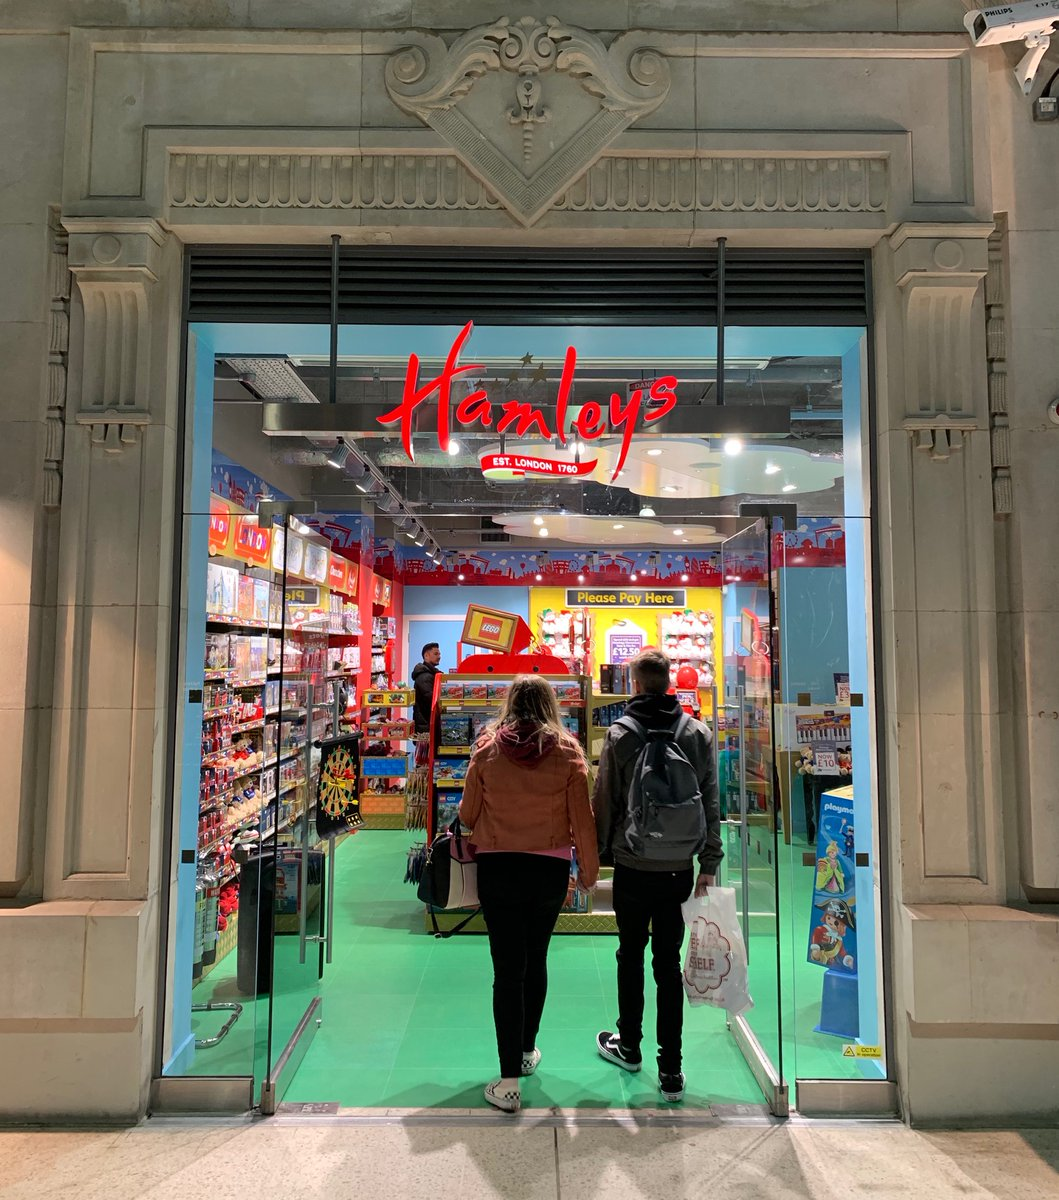 Hamleys newest store in Waterloo Railway Station London.